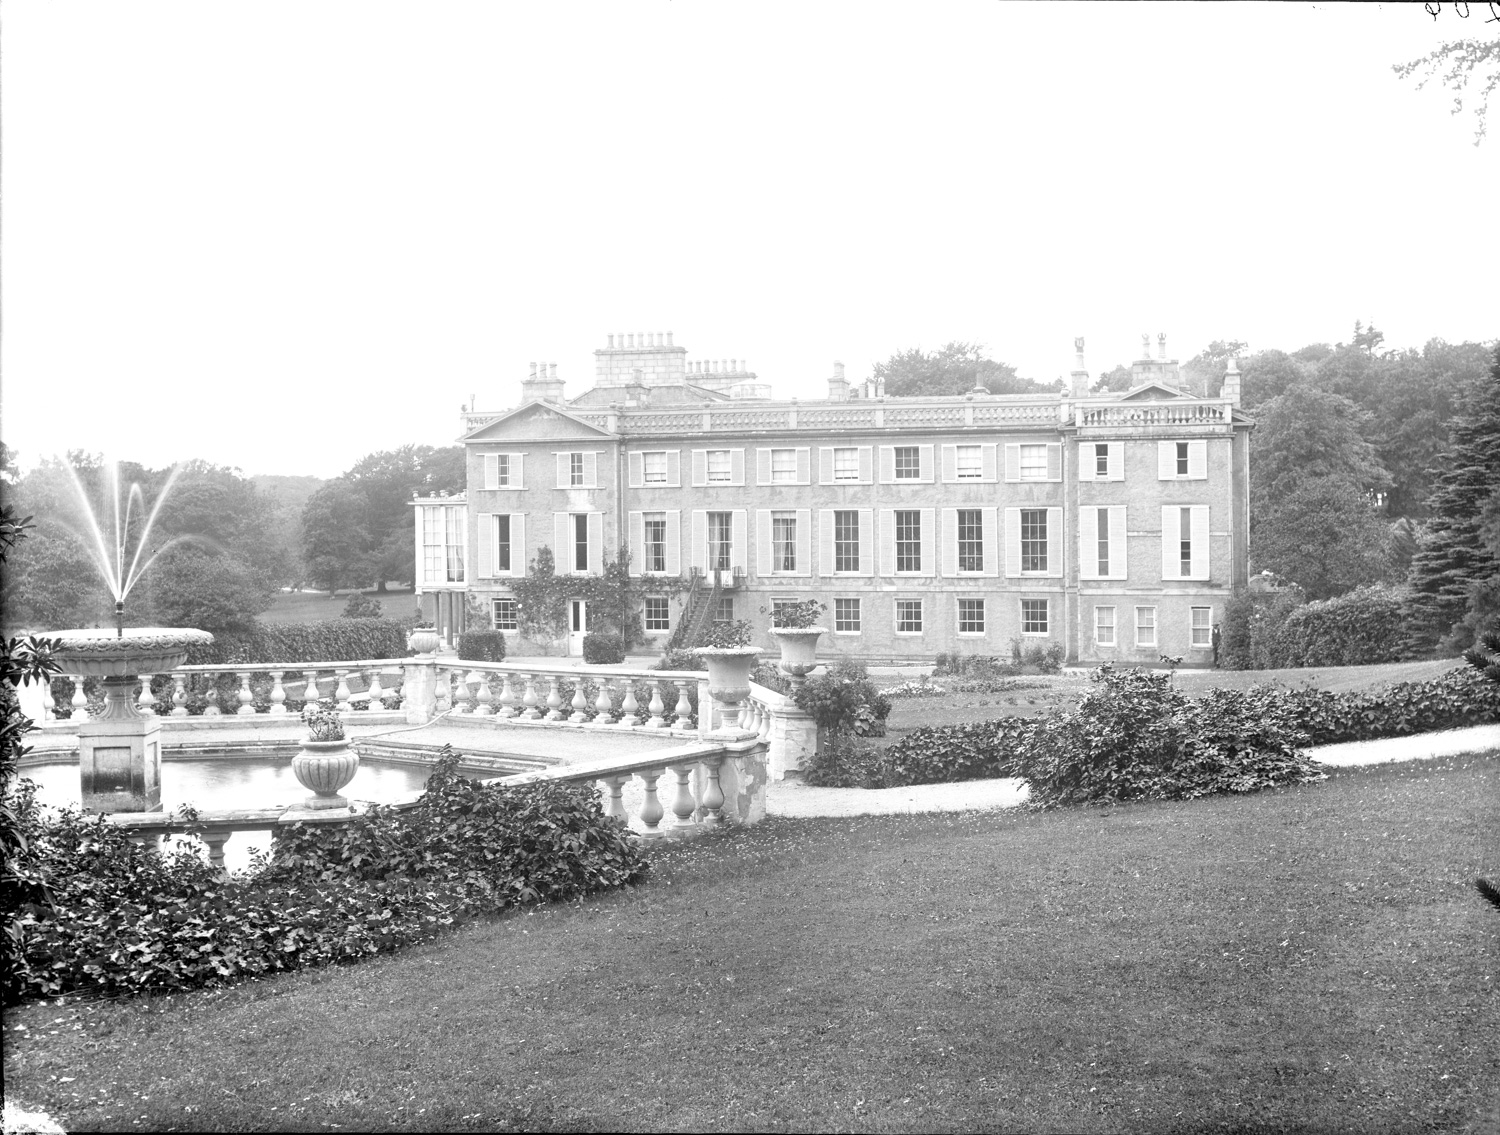 19th century image of Pitfour house.